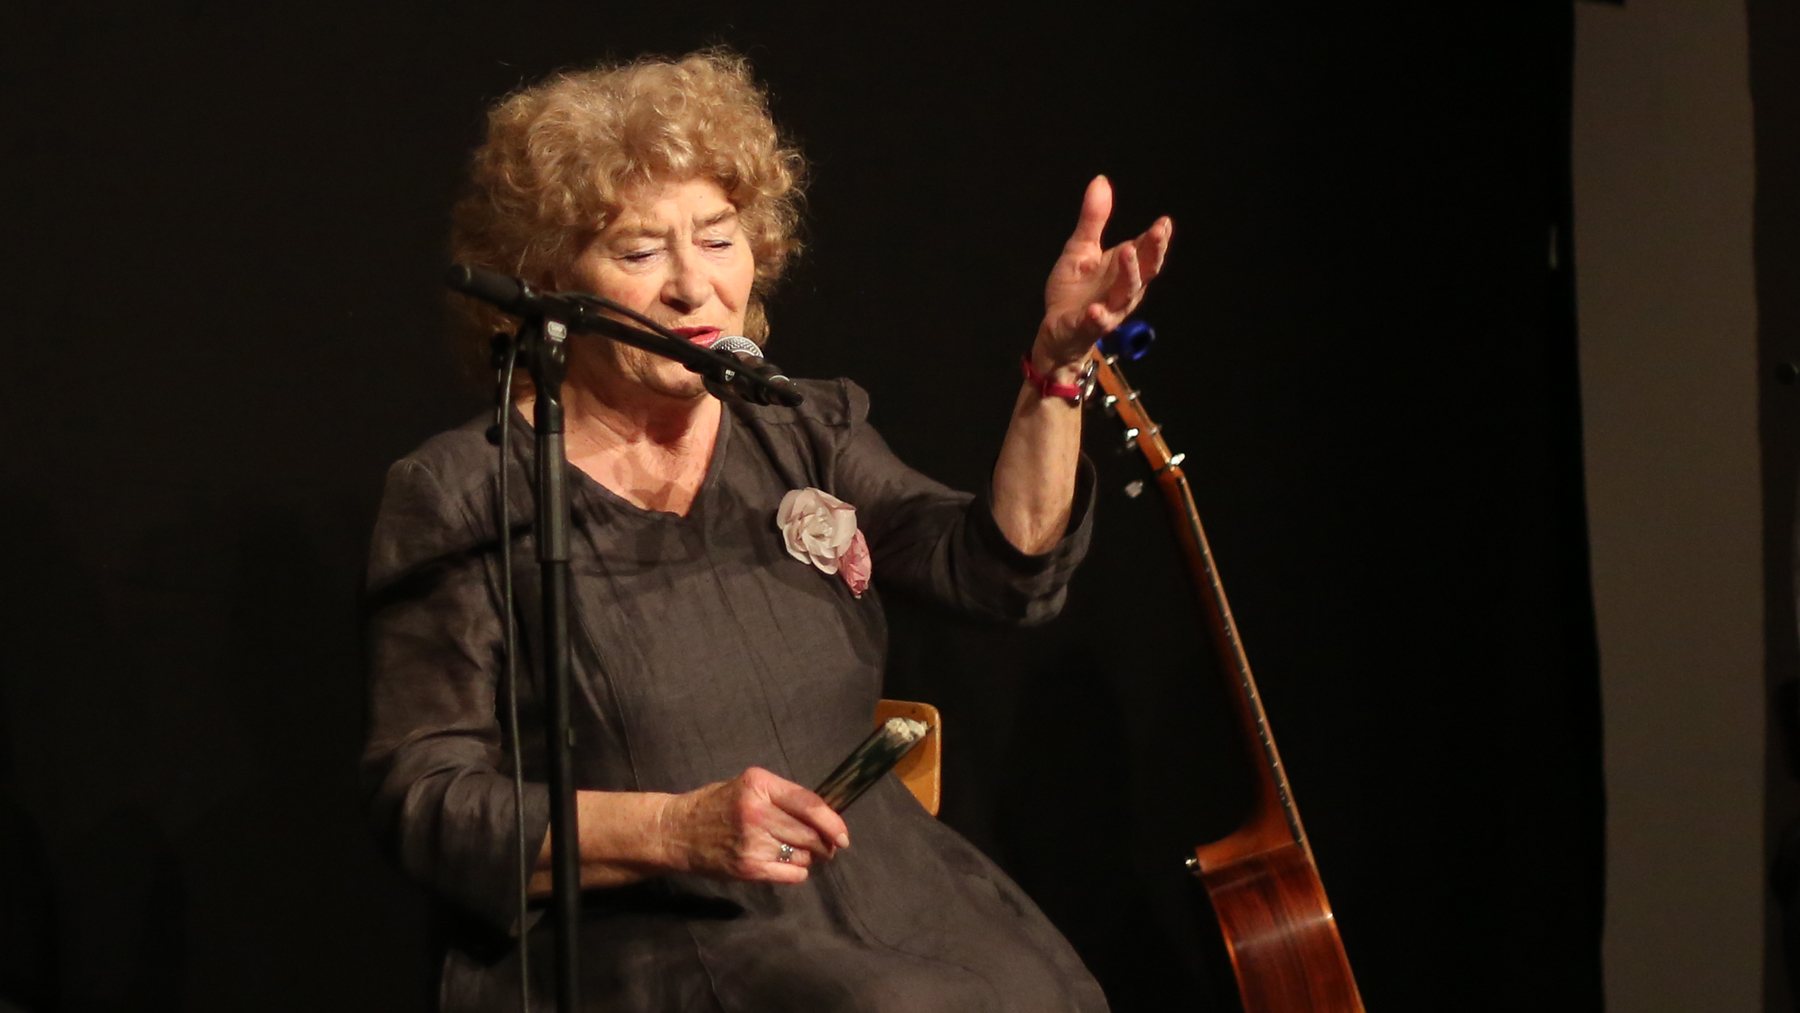 Shirley Collins live at her first ever Danish concert at Kunsthal Charlottenborg for CPH:DOX